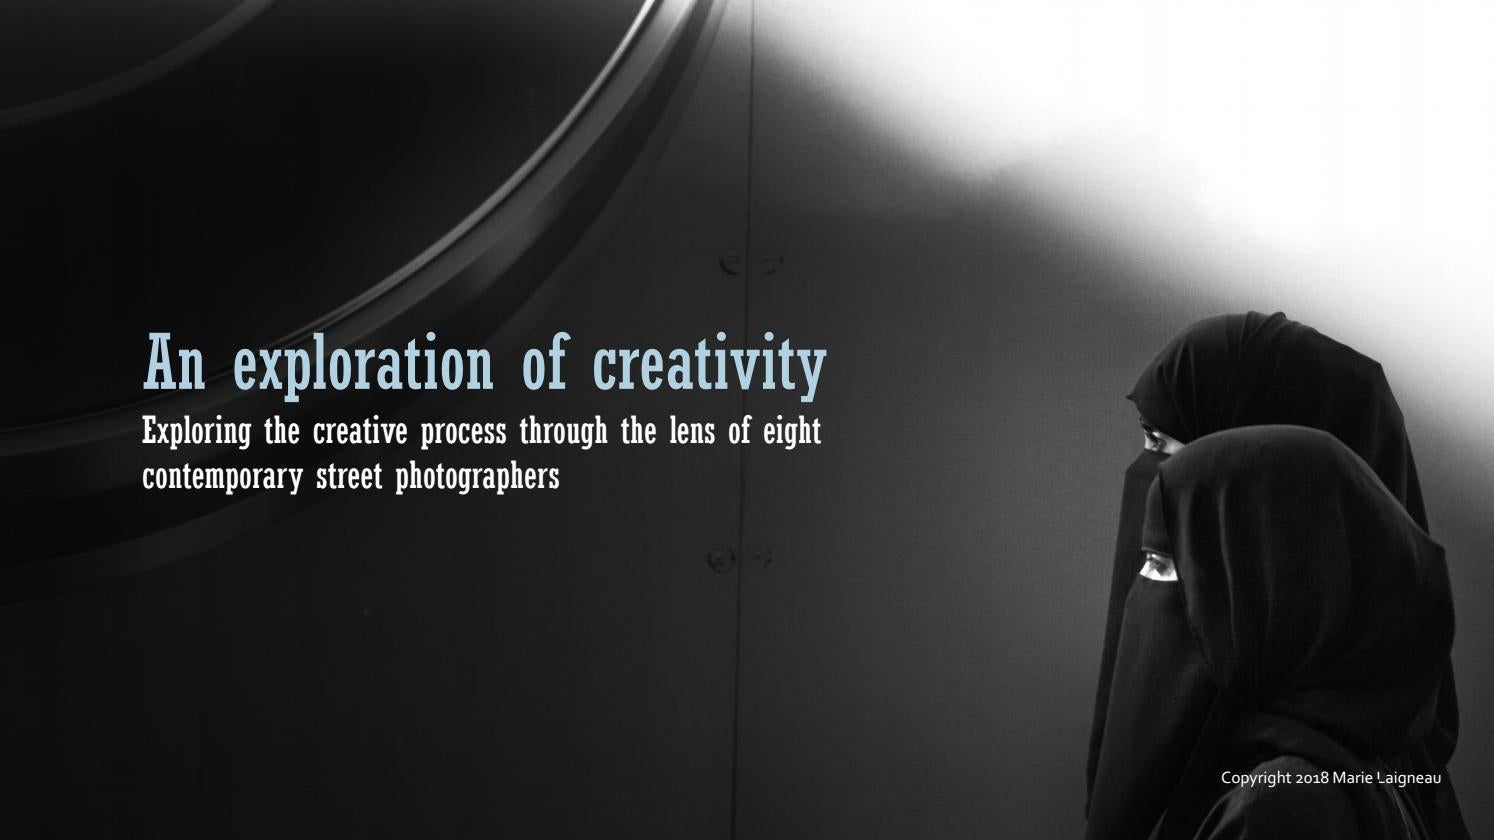 An exploration of creativity by Marie Laigneau